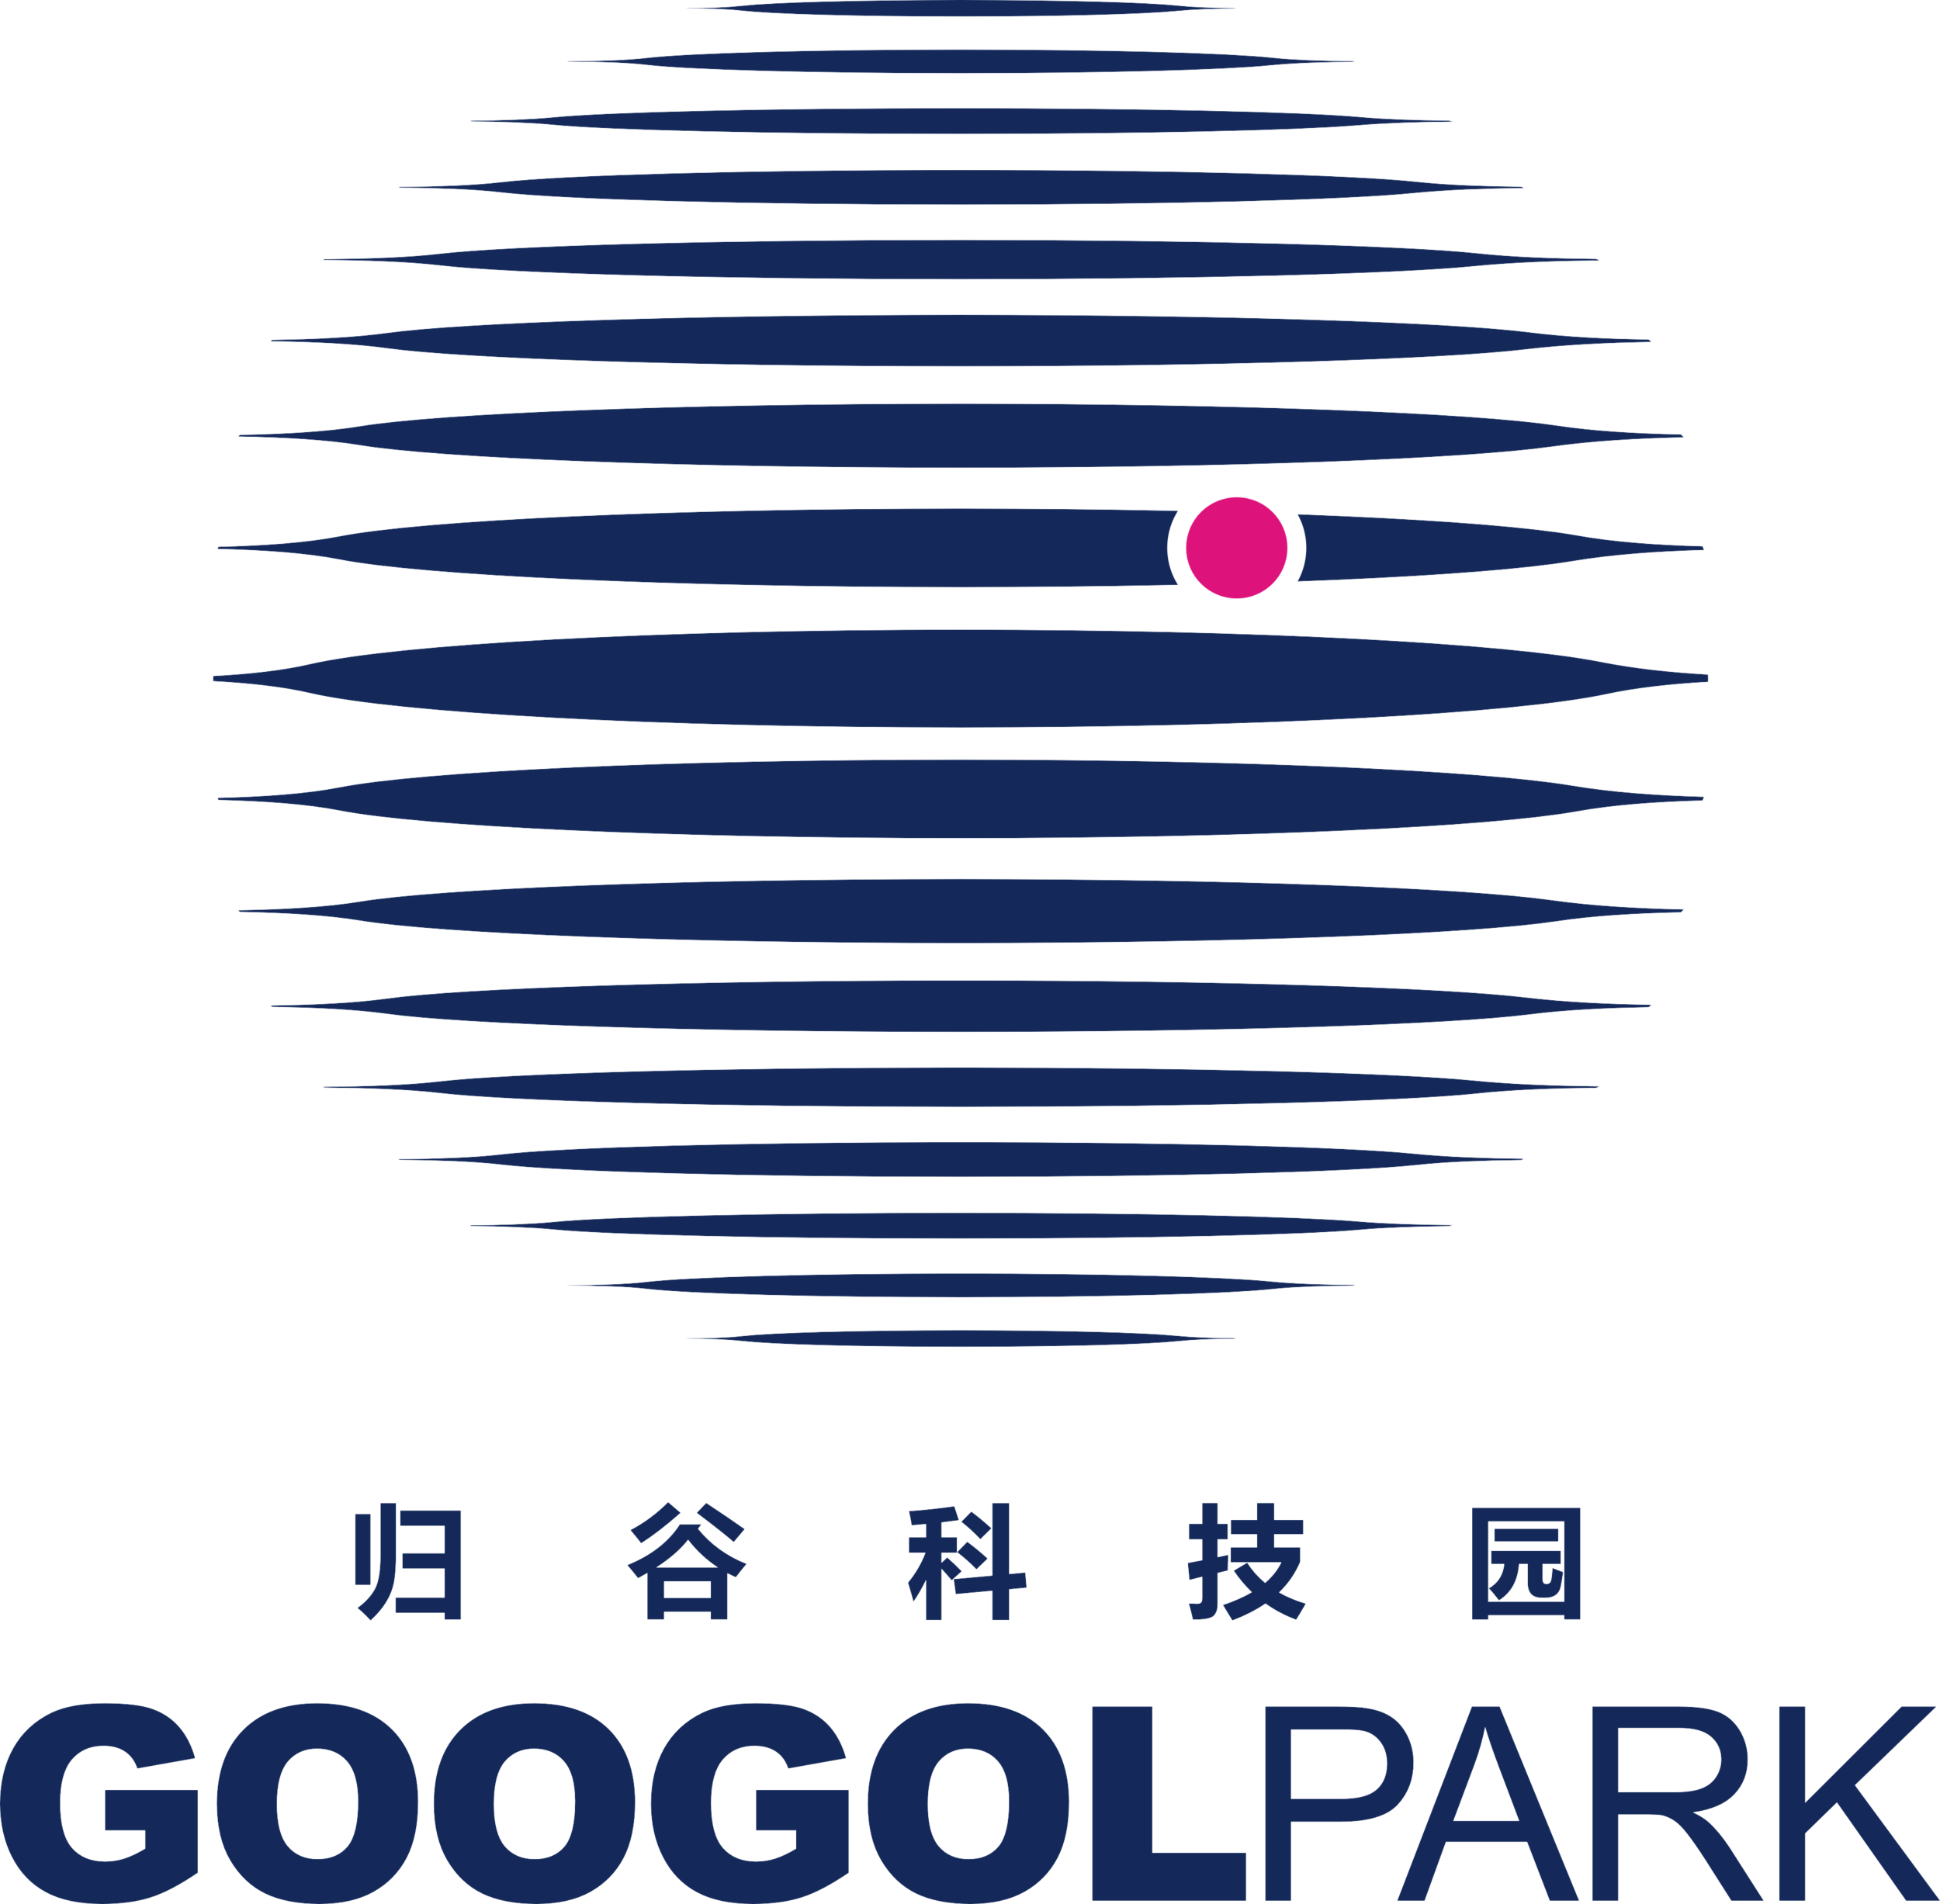 http://www.googolpark.com/about.php